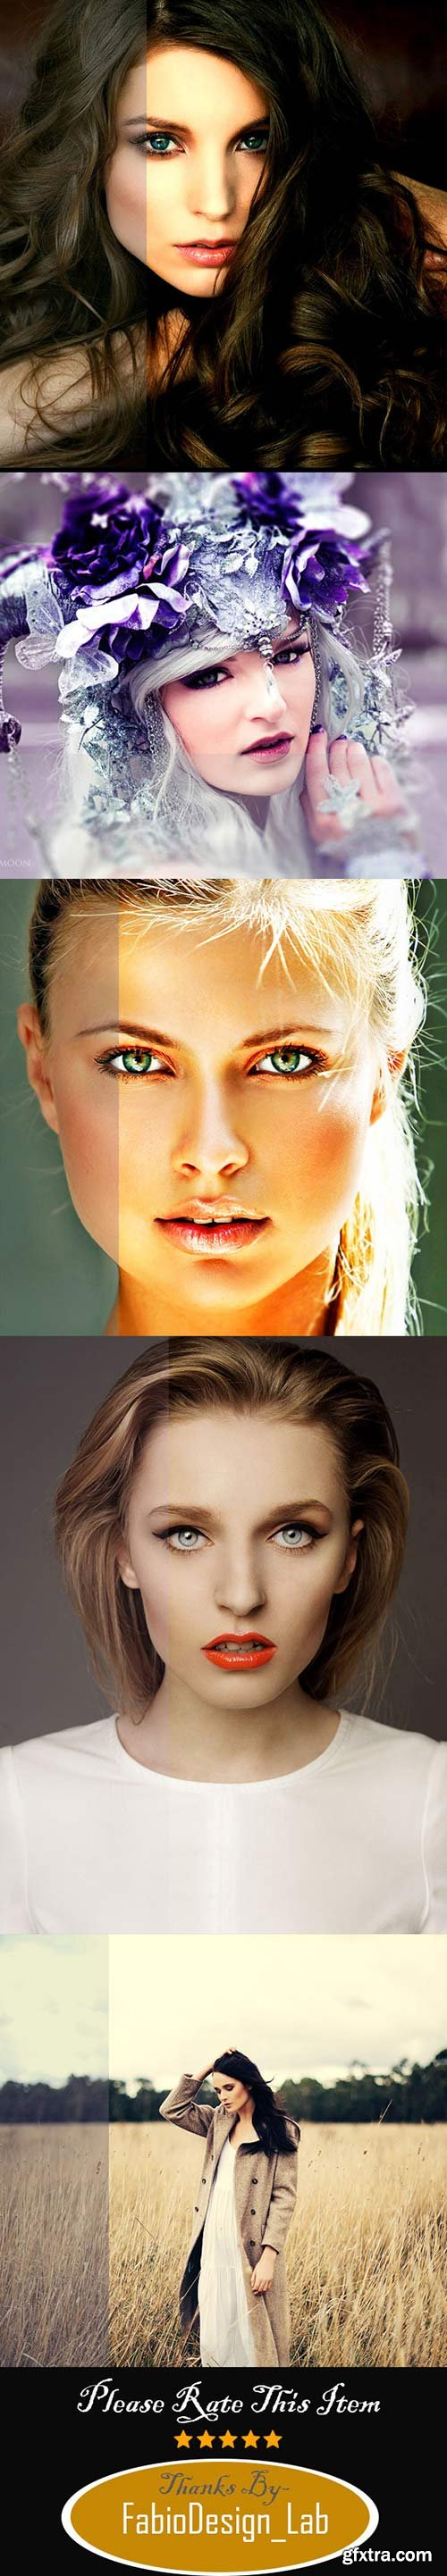 GraphicRiver - 23 HDR & Soft Photoshop Actions Pack 11376346